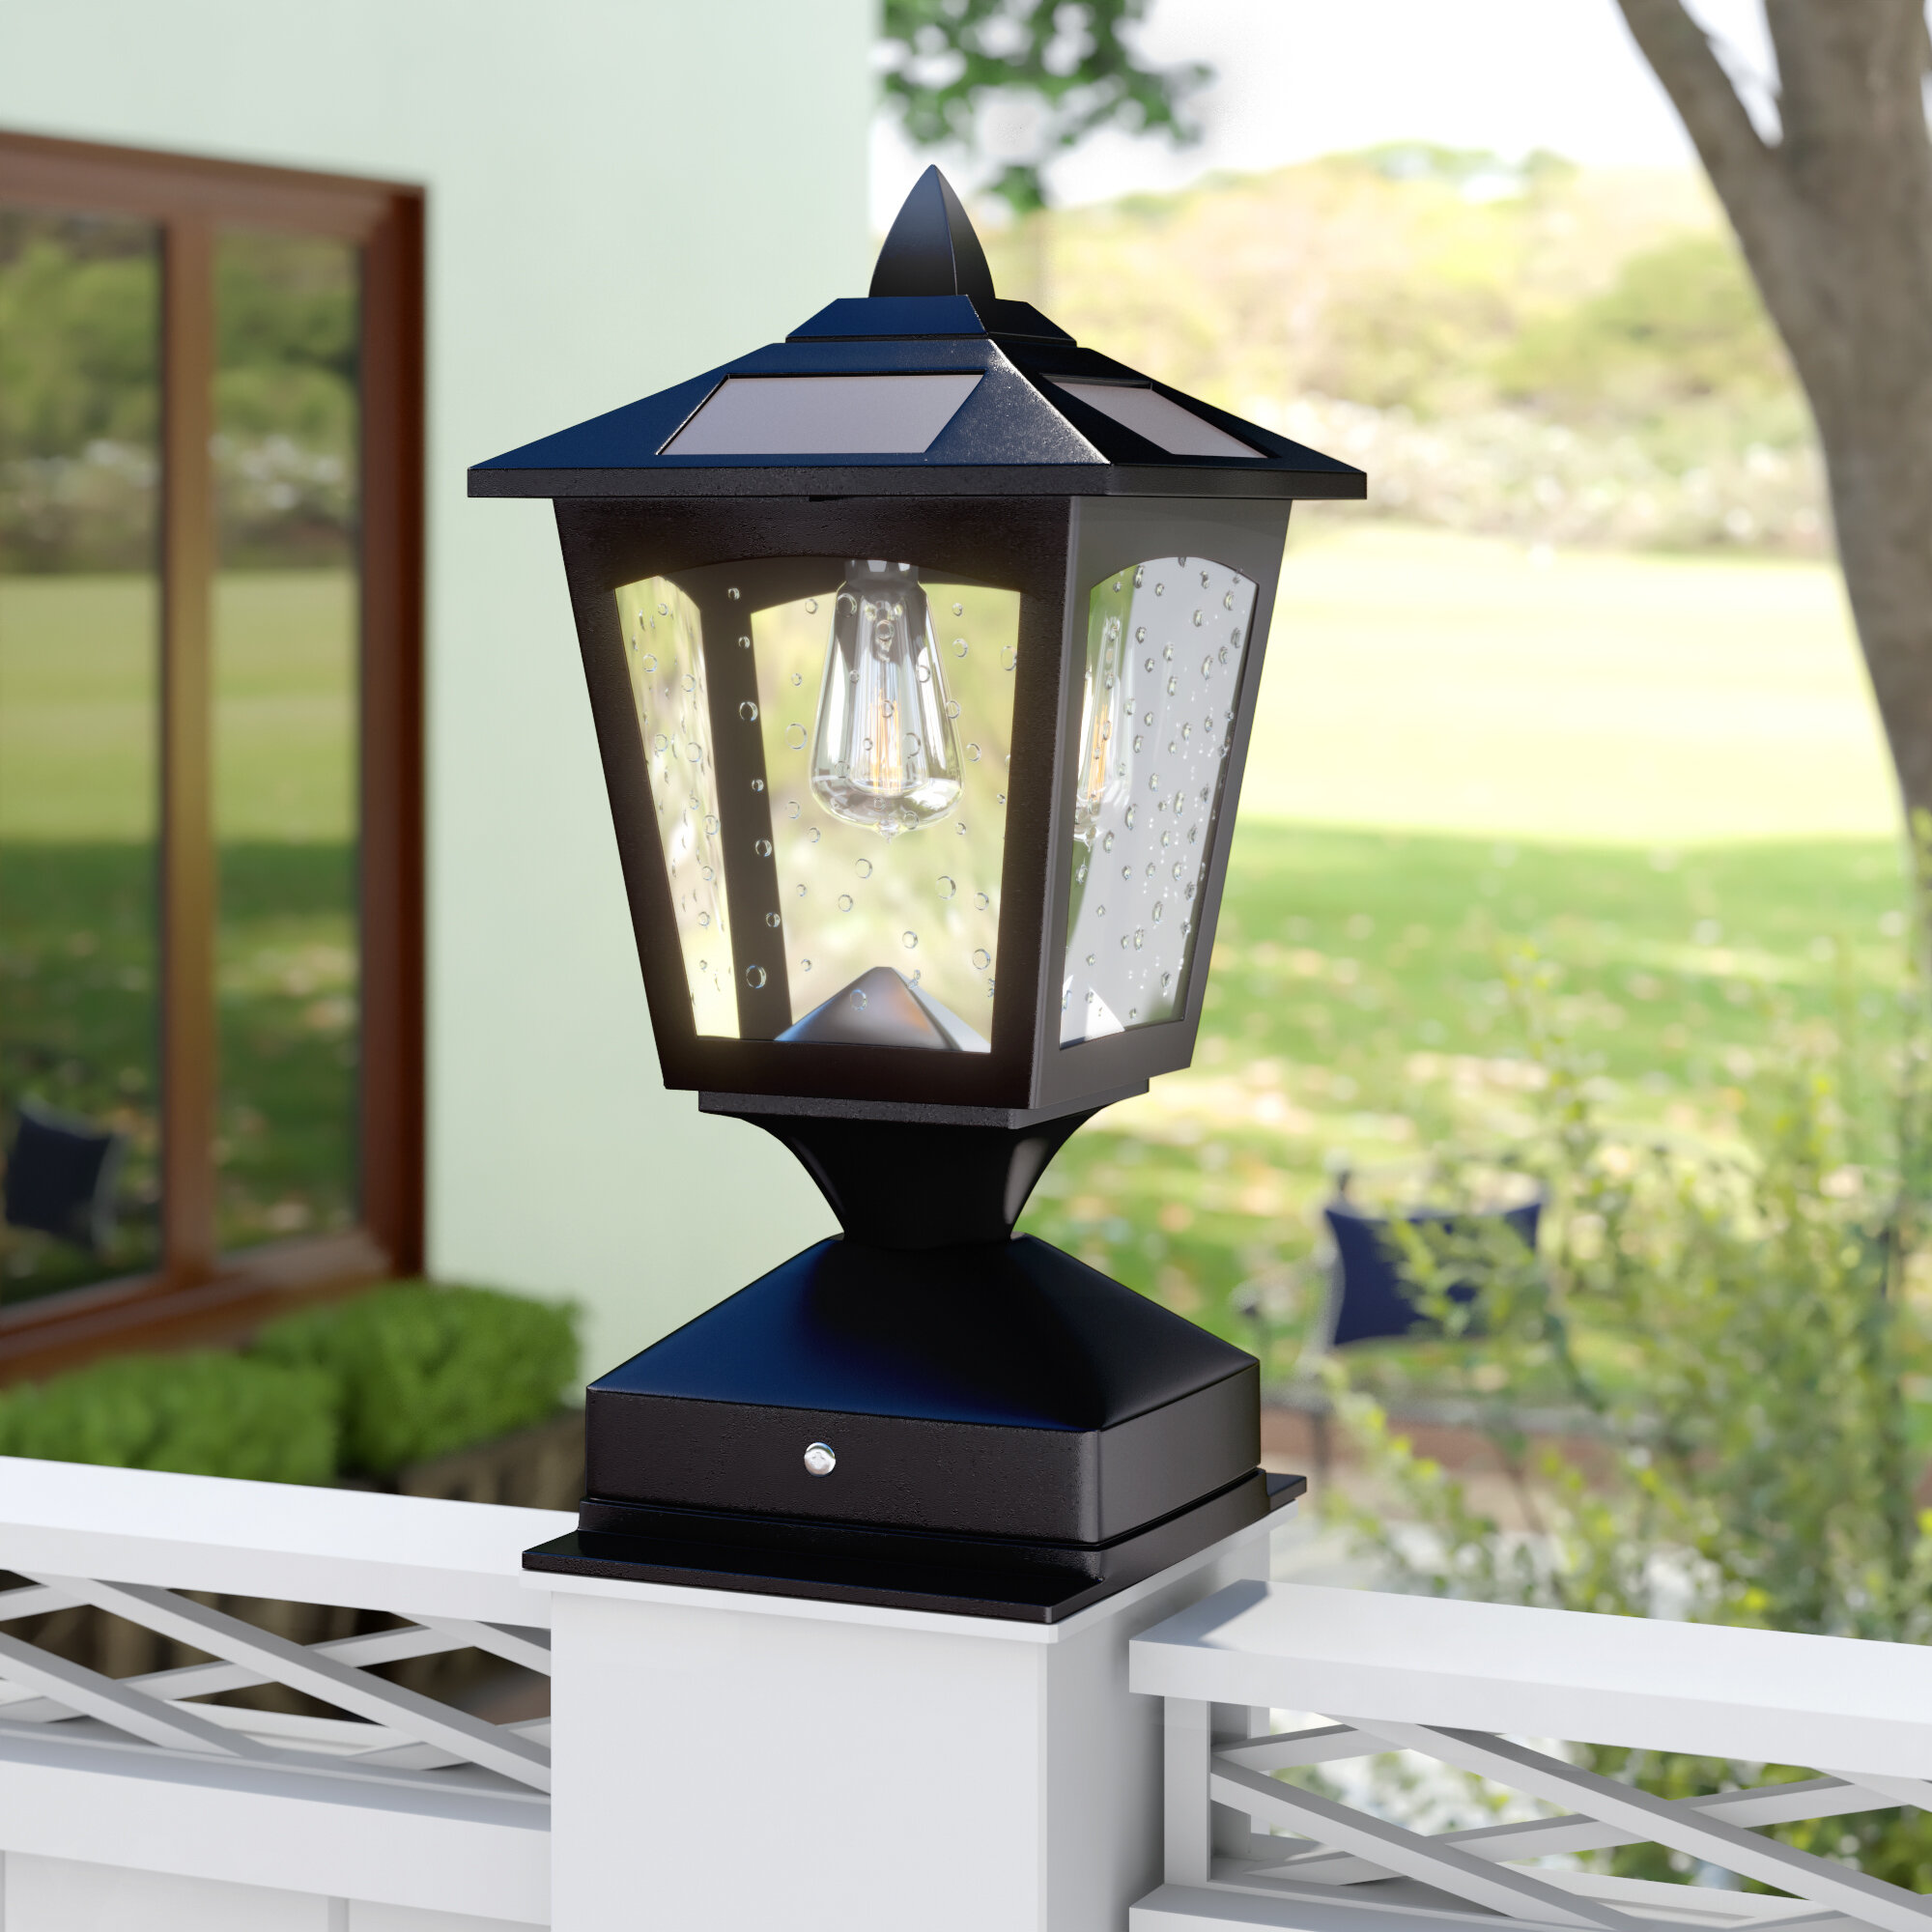 Outdoor Post LED Lamp Solar Powered Cast Aluminum Housing Weather Resistant